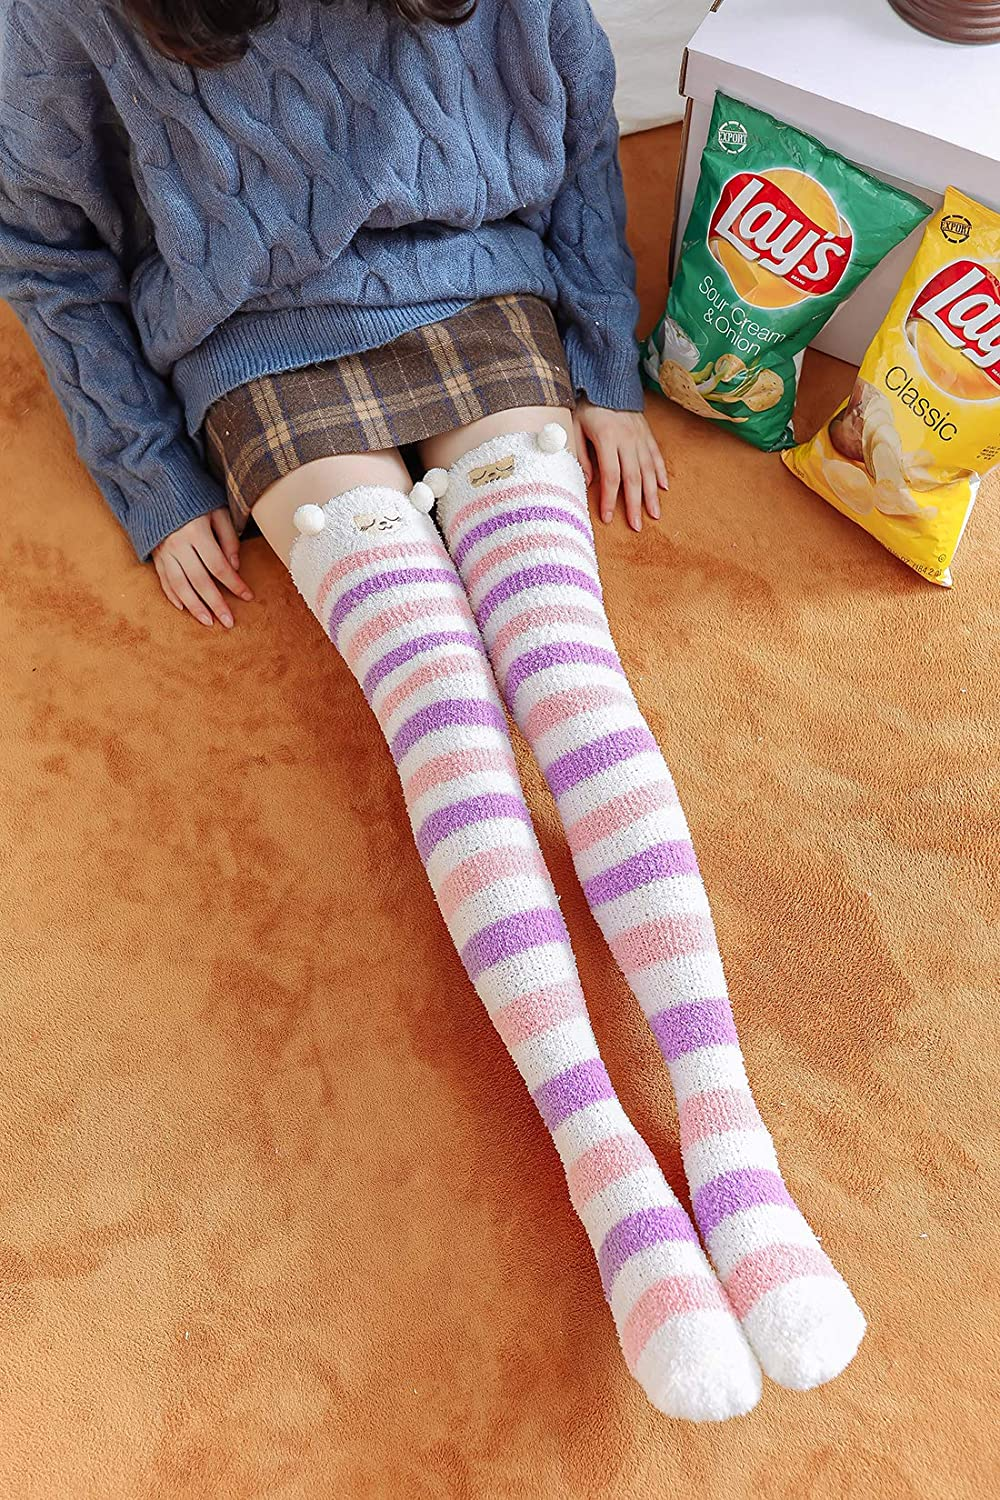 Biruil Fuzzy Socks Over Knee High Cute Cartoon Animal Winter Leg Warmers Stockings